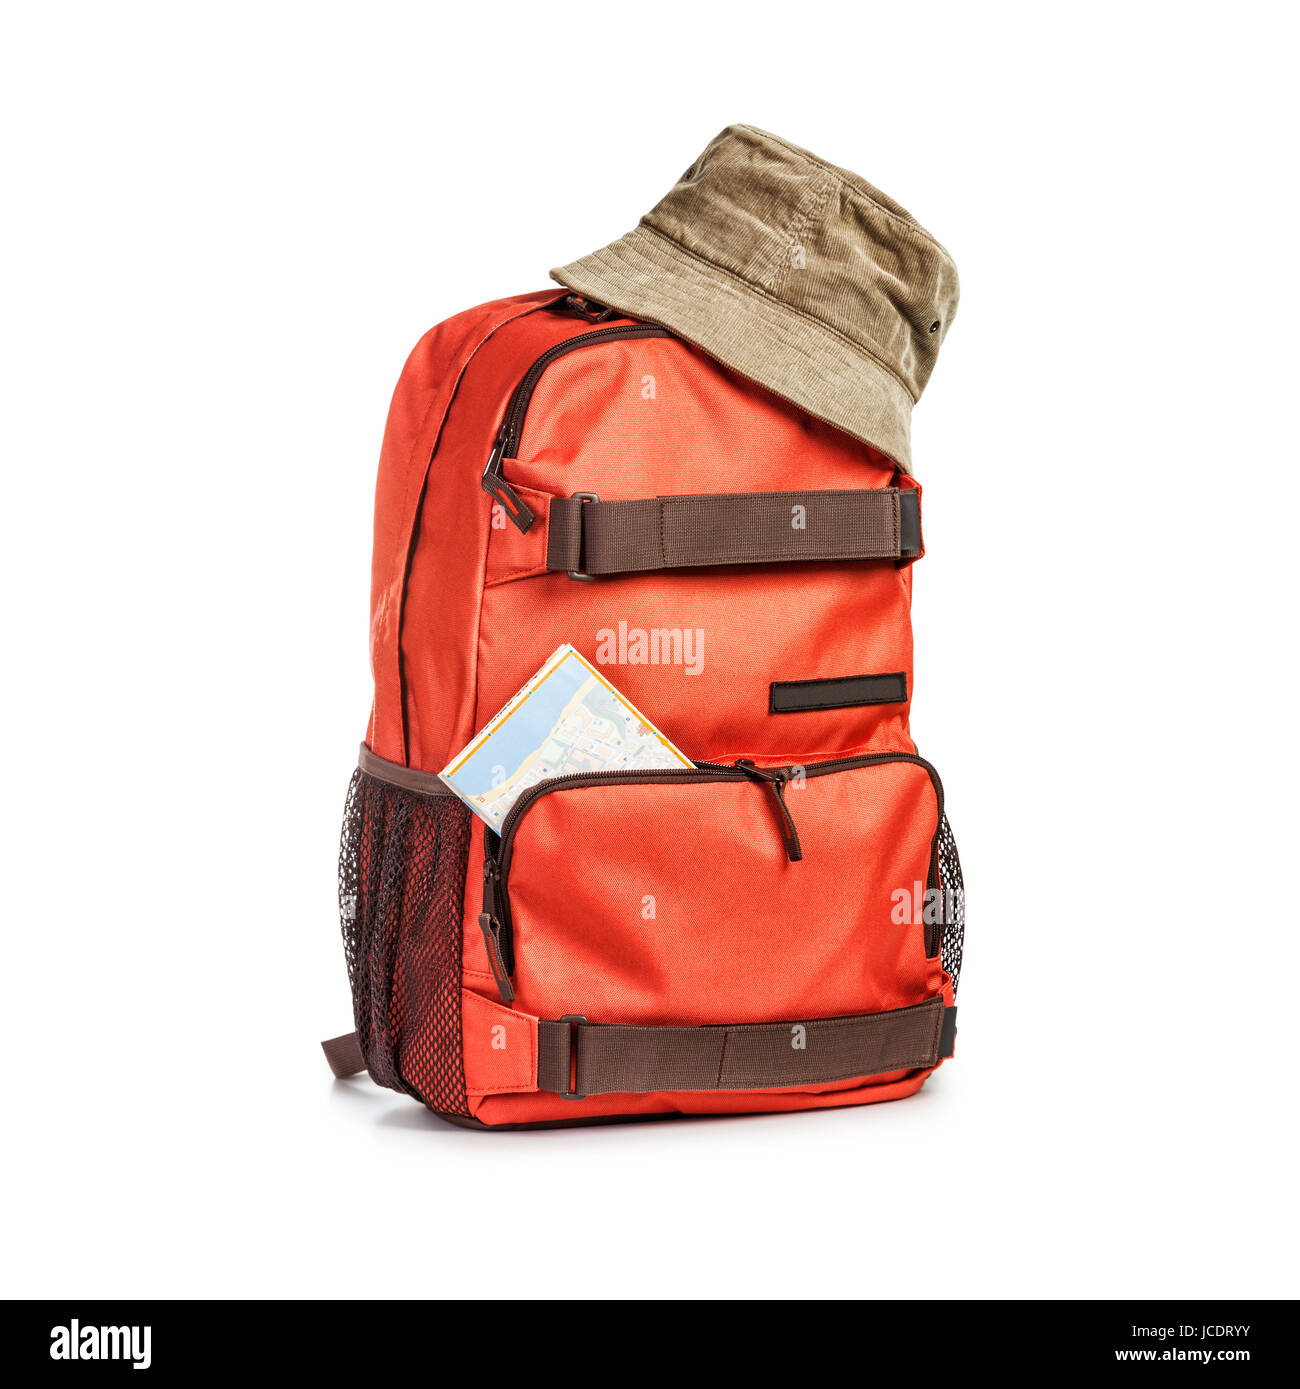 Backpack with hat and map isolated on white background. Tourism and travel  themes. Clipping path ea025d94a4a32